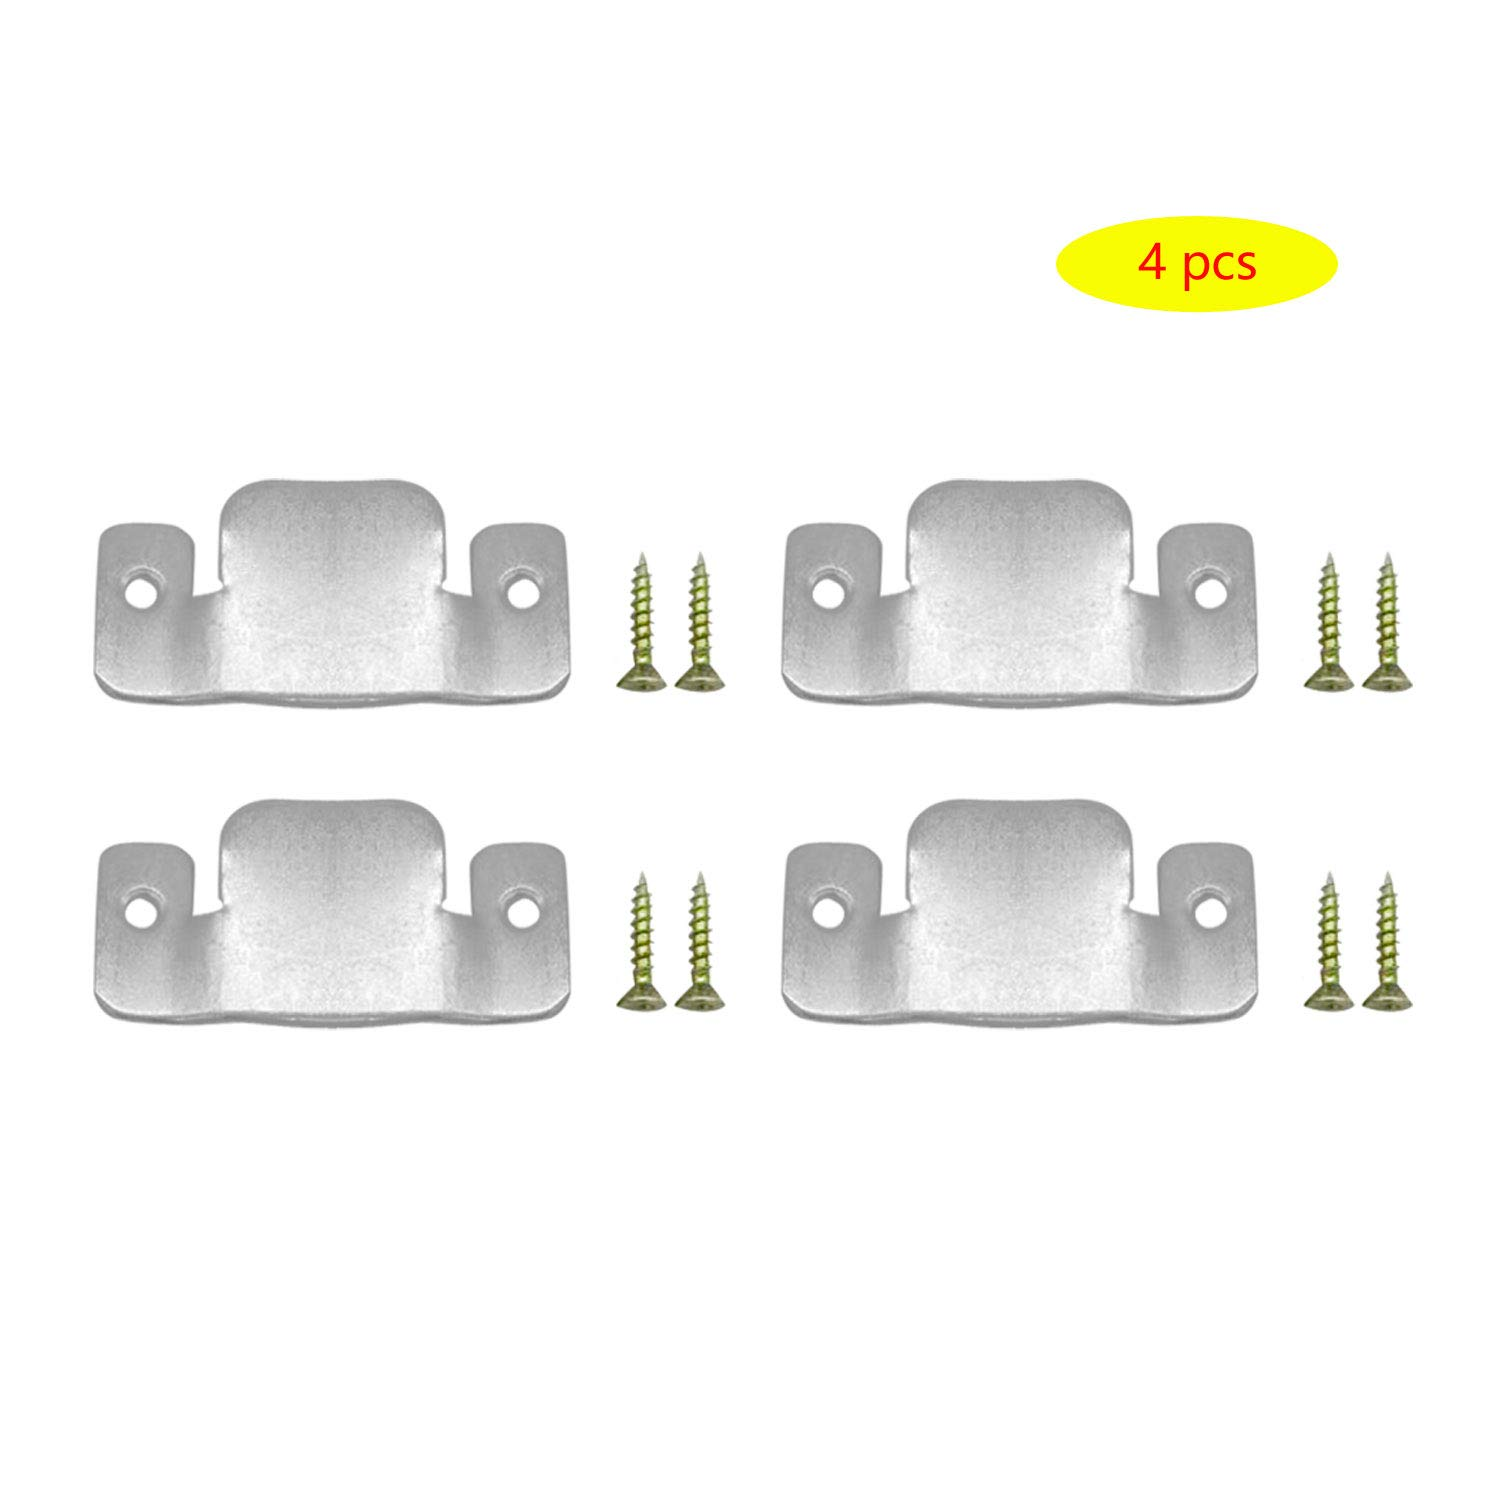 AWTOK Sectional Sofa Connector Bracket, Sectional Couch Connectors Bands for Sectionals,Furniture Connectors with Screws,4 Pieces